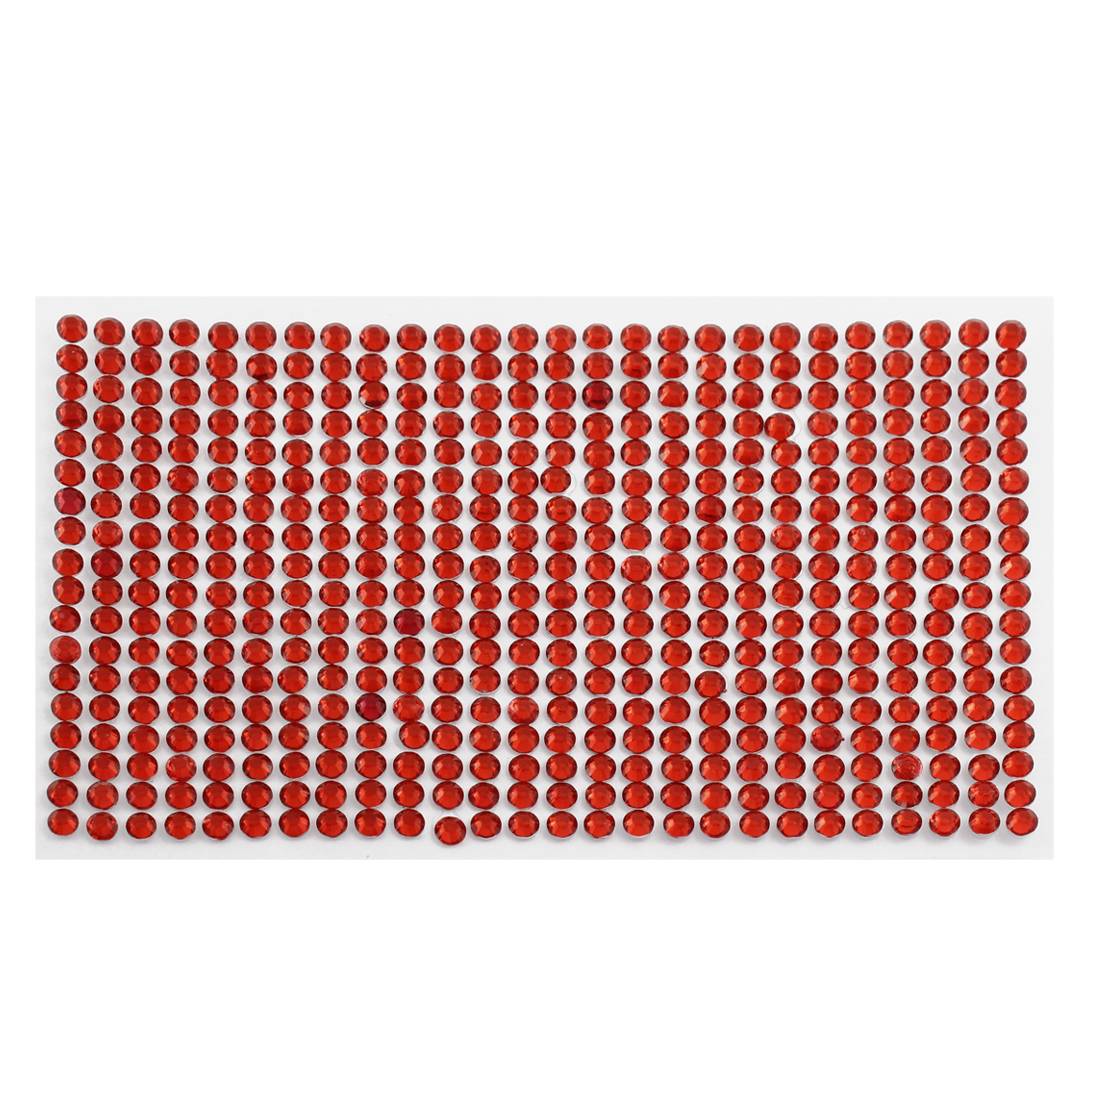 Red 5mm Round Self Adhesive Bling Crystal Rhinestone Decorating Stickers